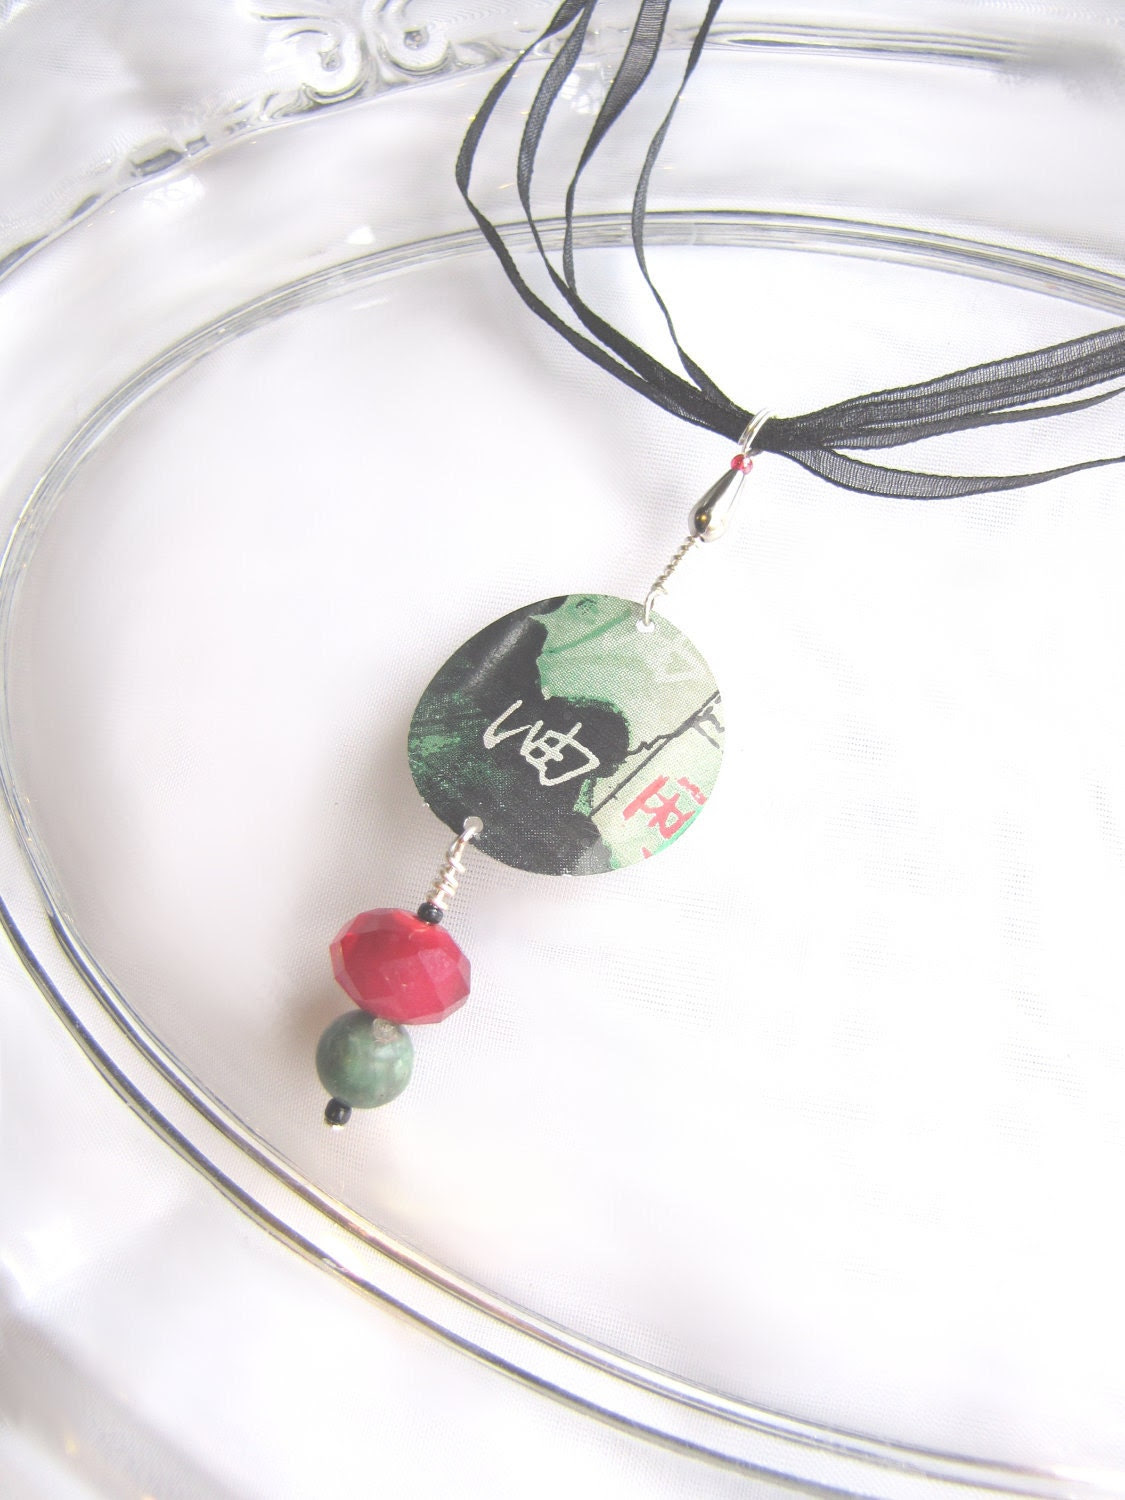 Asian Amulet Necklace with Gemtones - Recycled Soda Can